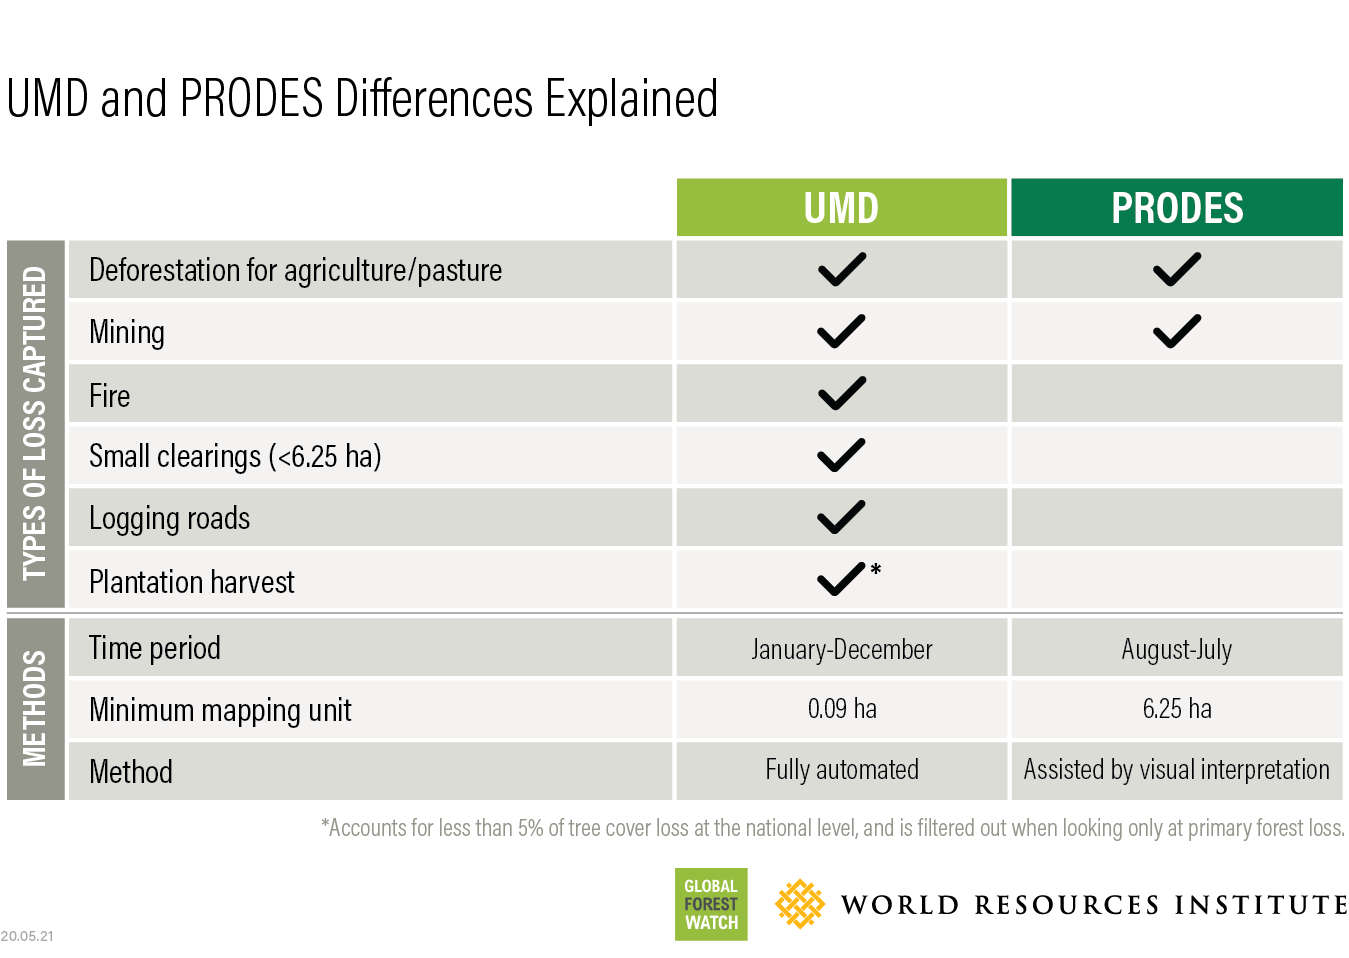 Comparison of UMD data to PRODES official Brazilian deforestation data.